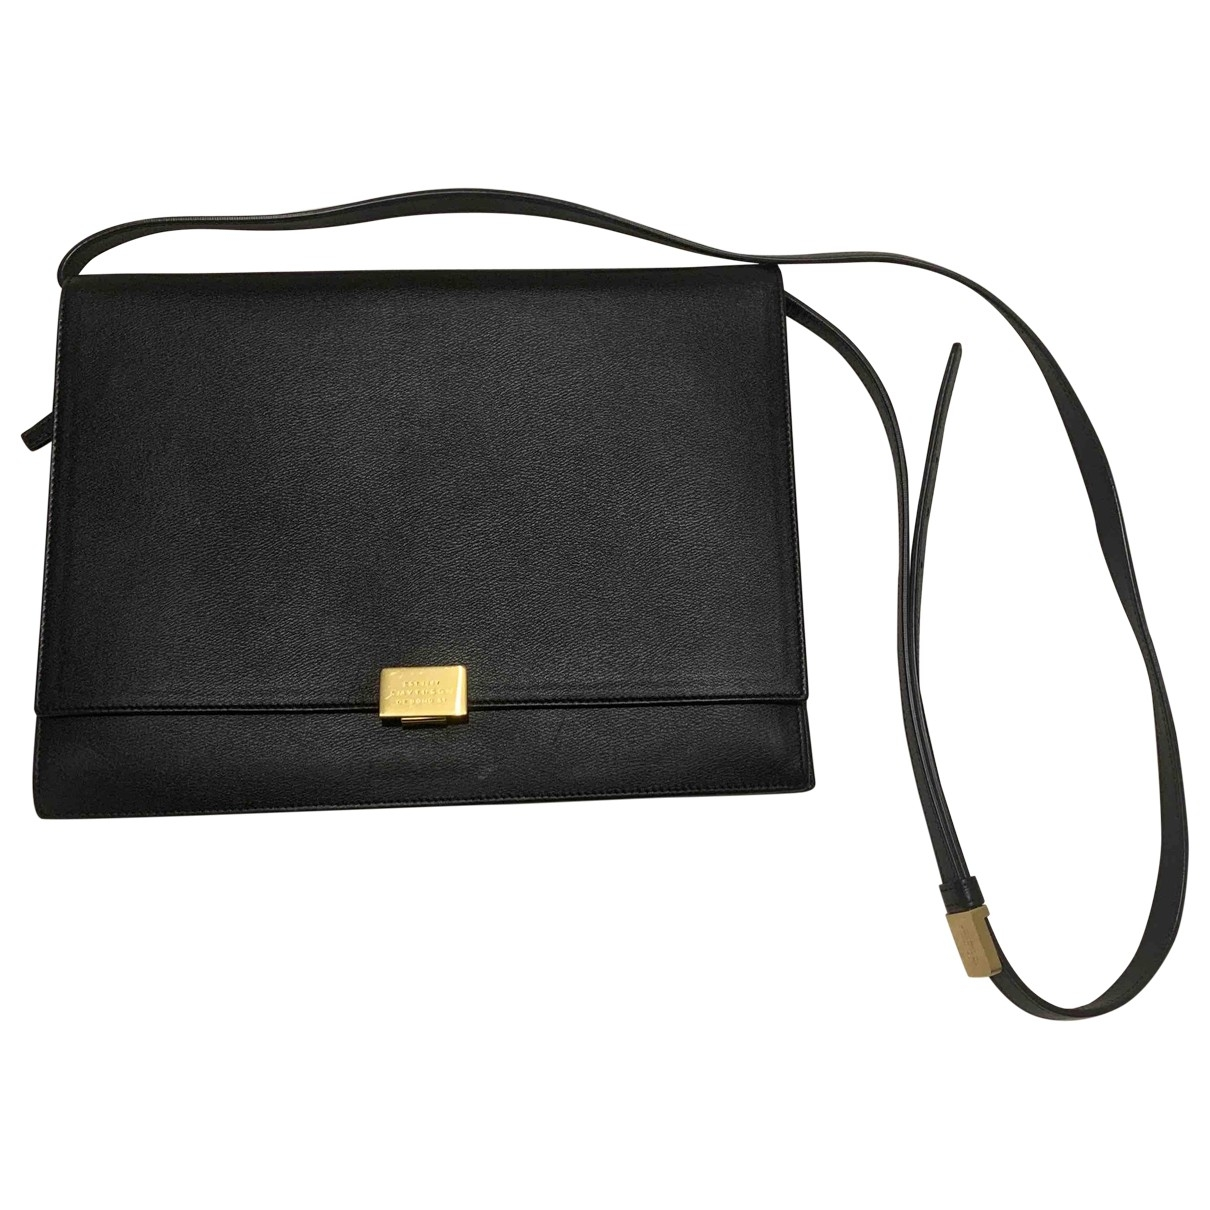 Smythson \N Black Leather handbag for Women \N